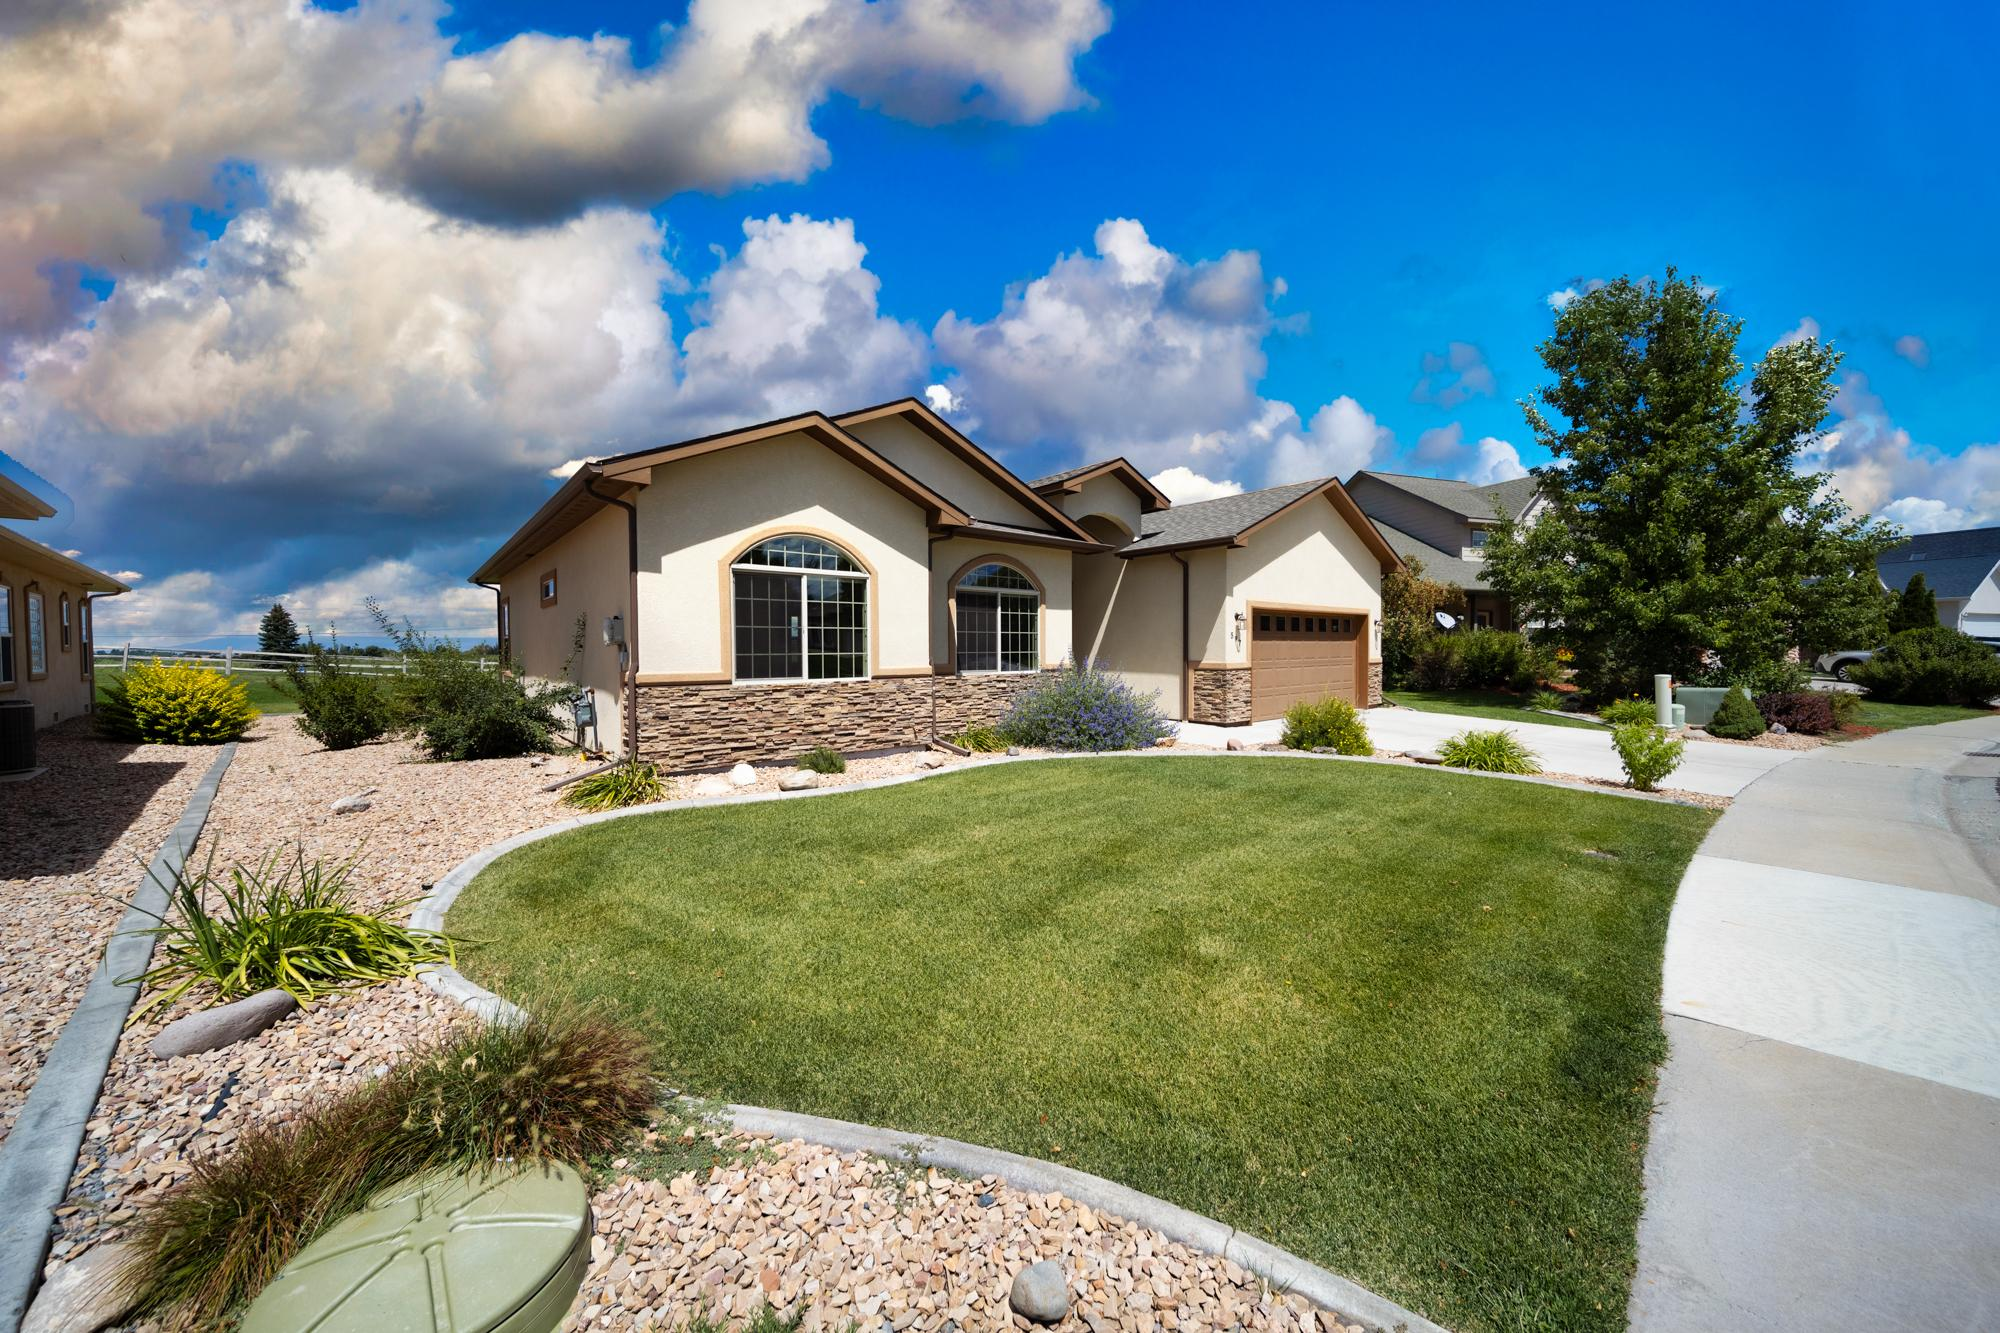 Landscaping with Irrigation System - 597 Cobble Dr Montrose, CO - Atha Team MLS Colorado